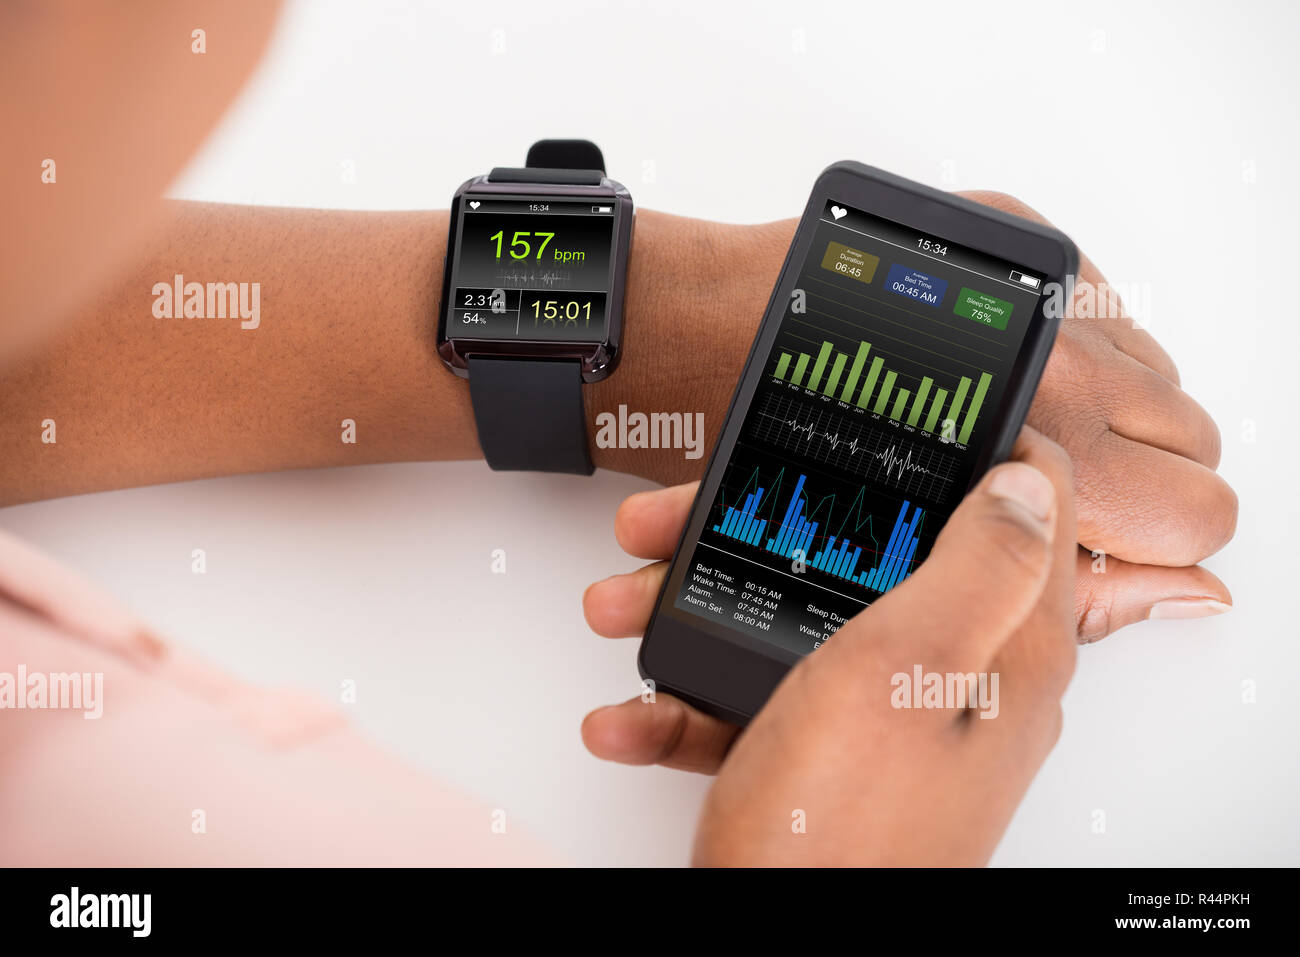 Hand With Mobile And Smartwatch Showing Heartbeat Rate - Stock Image